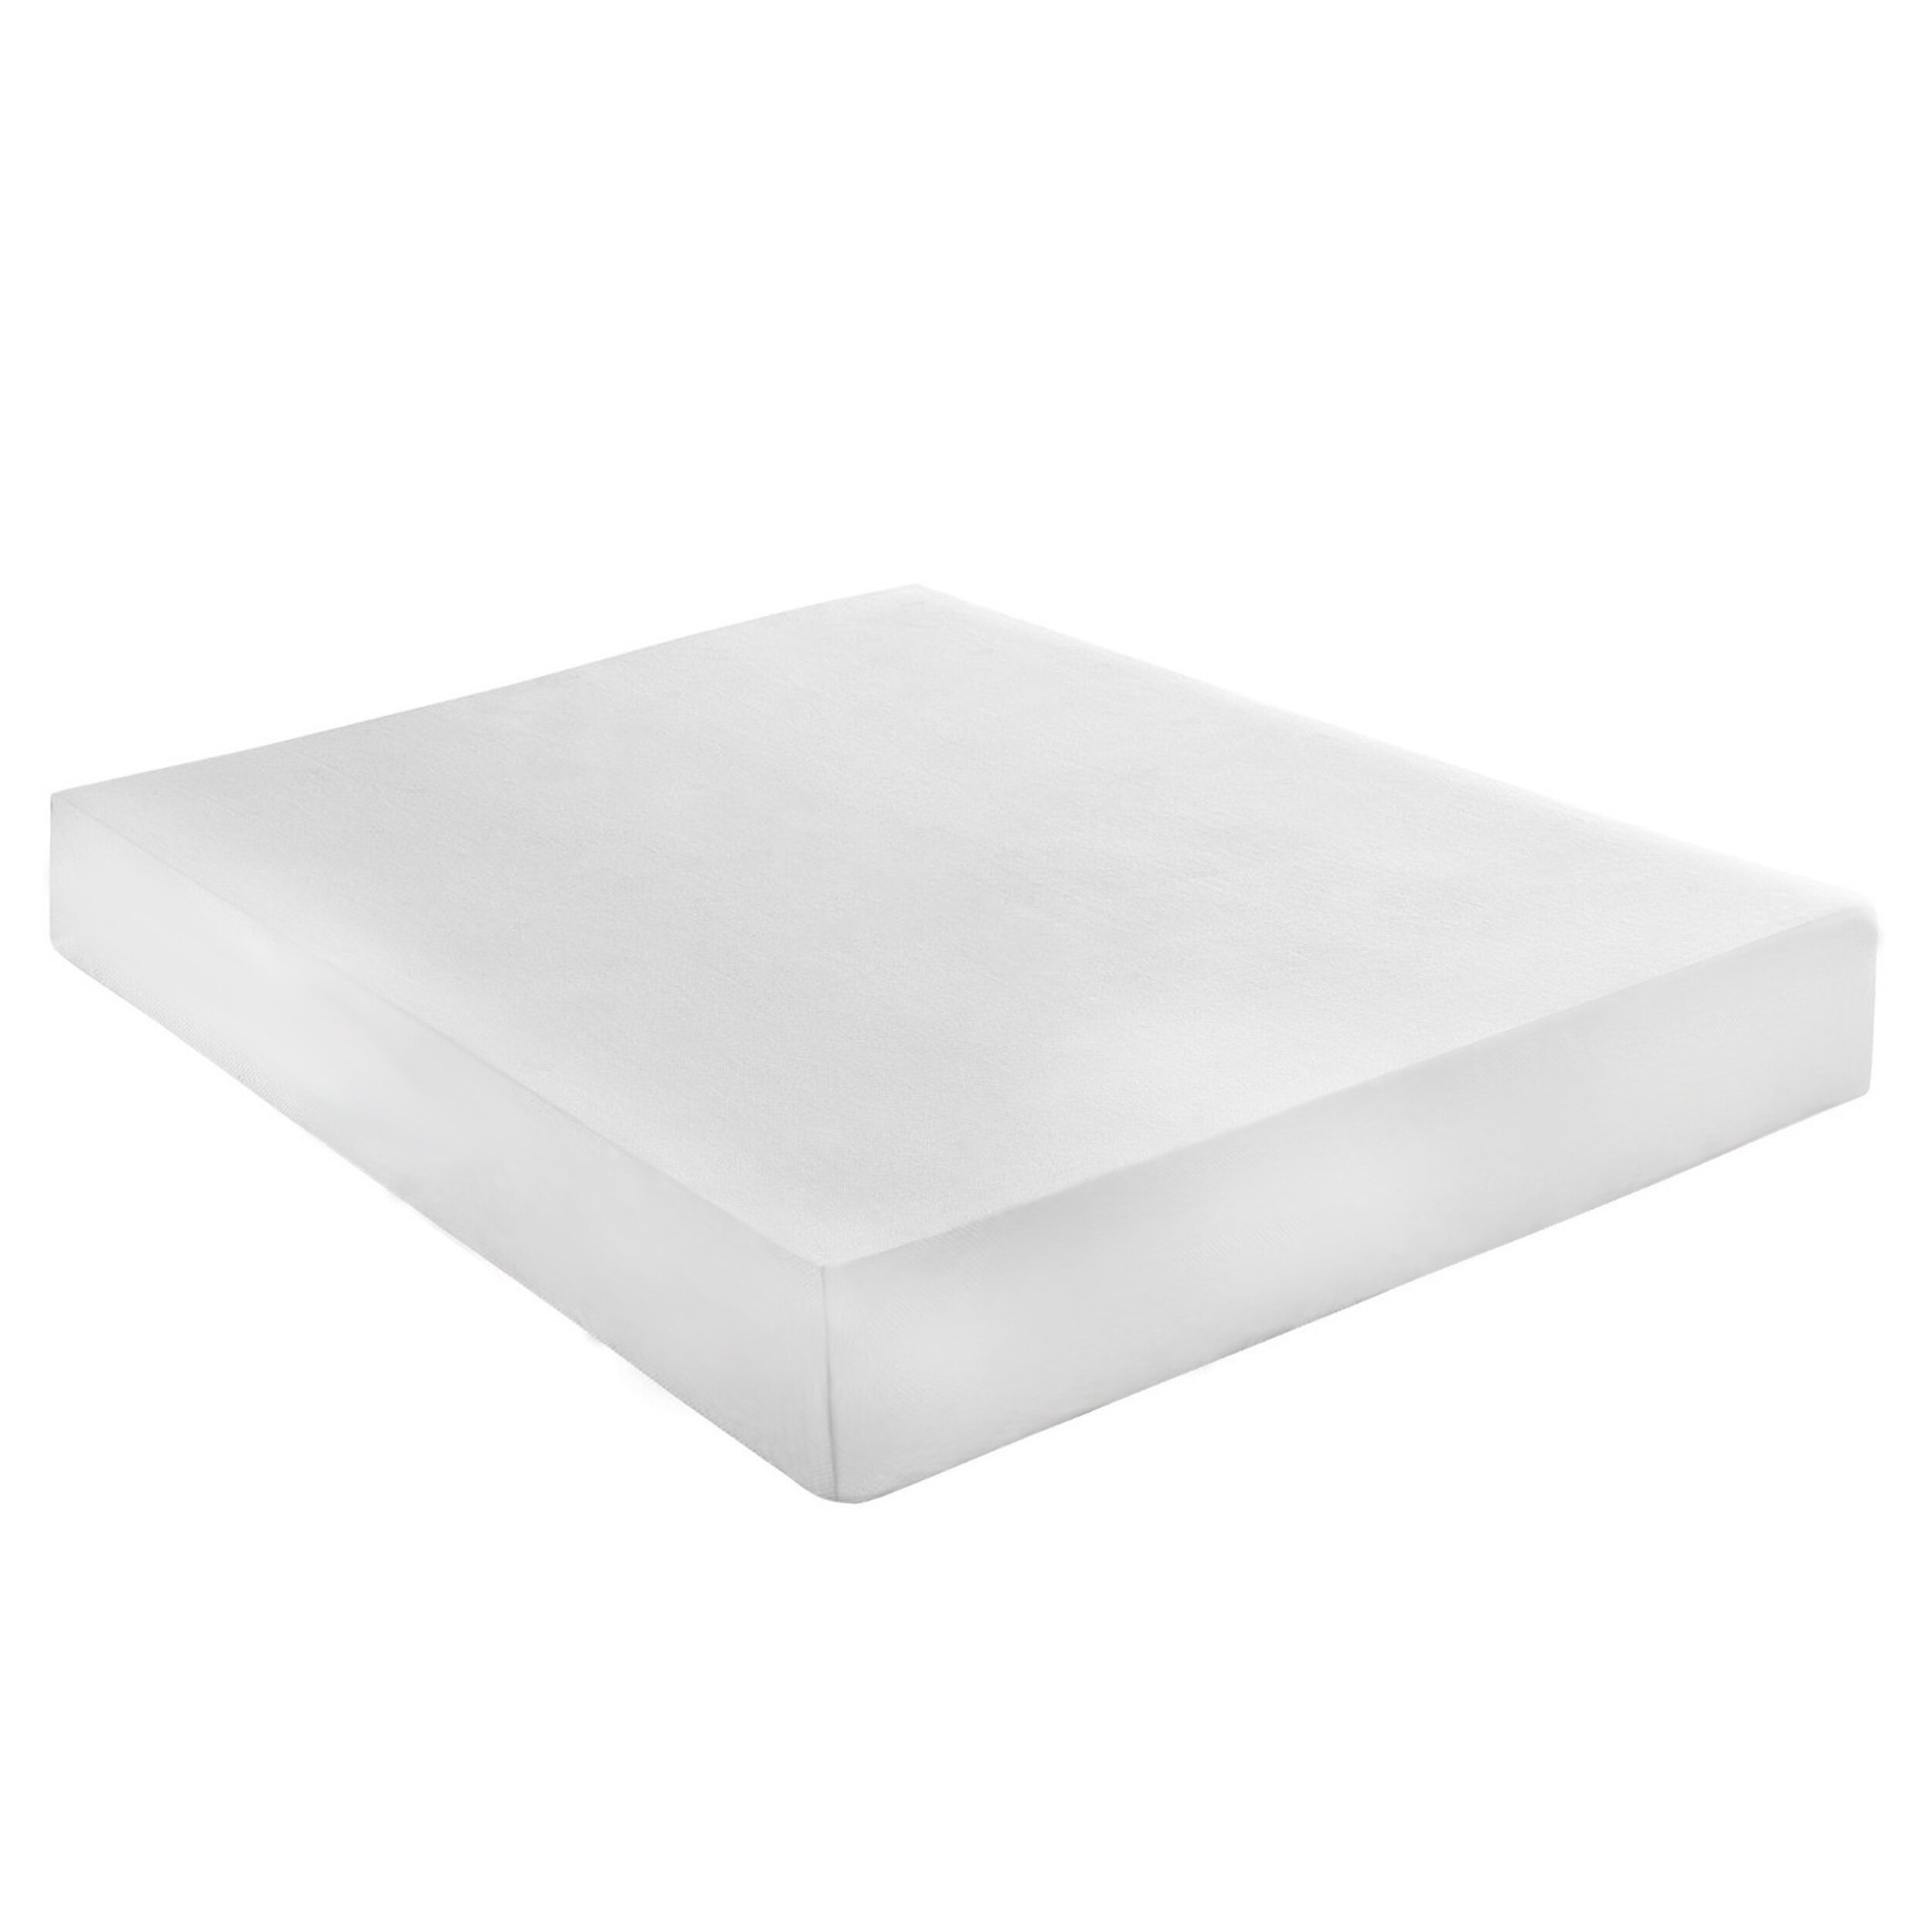 Madison Home Usa 10 Gel Memory Foam Mattress Reviews Wayfair